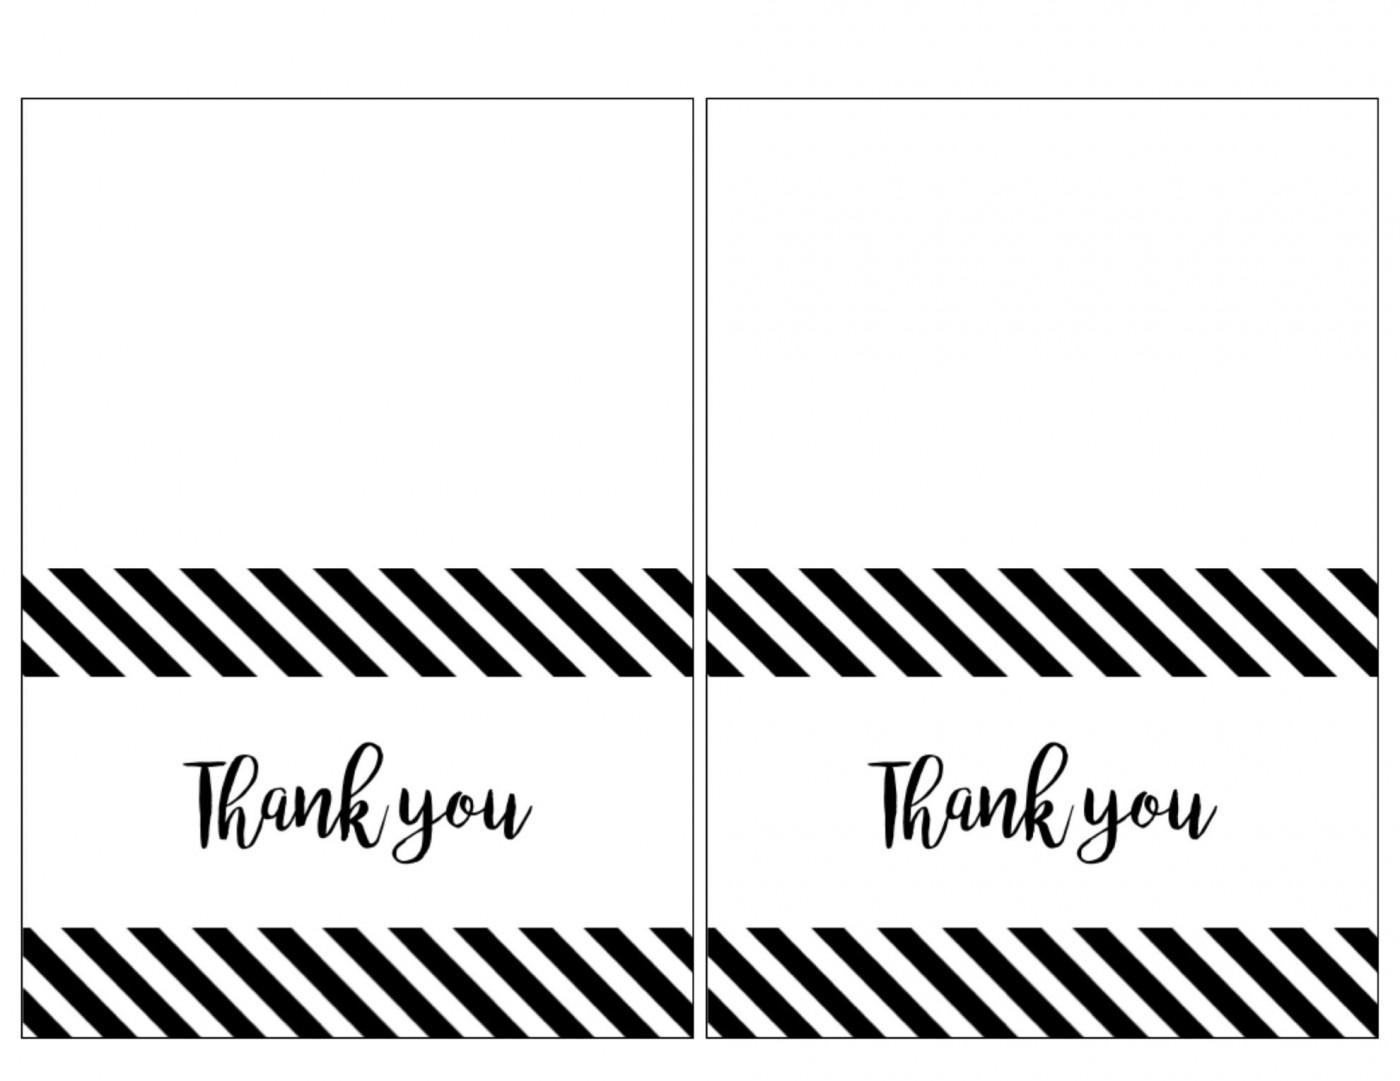 007 Wondrou Thank You Note Template Free Printable Picture 1400